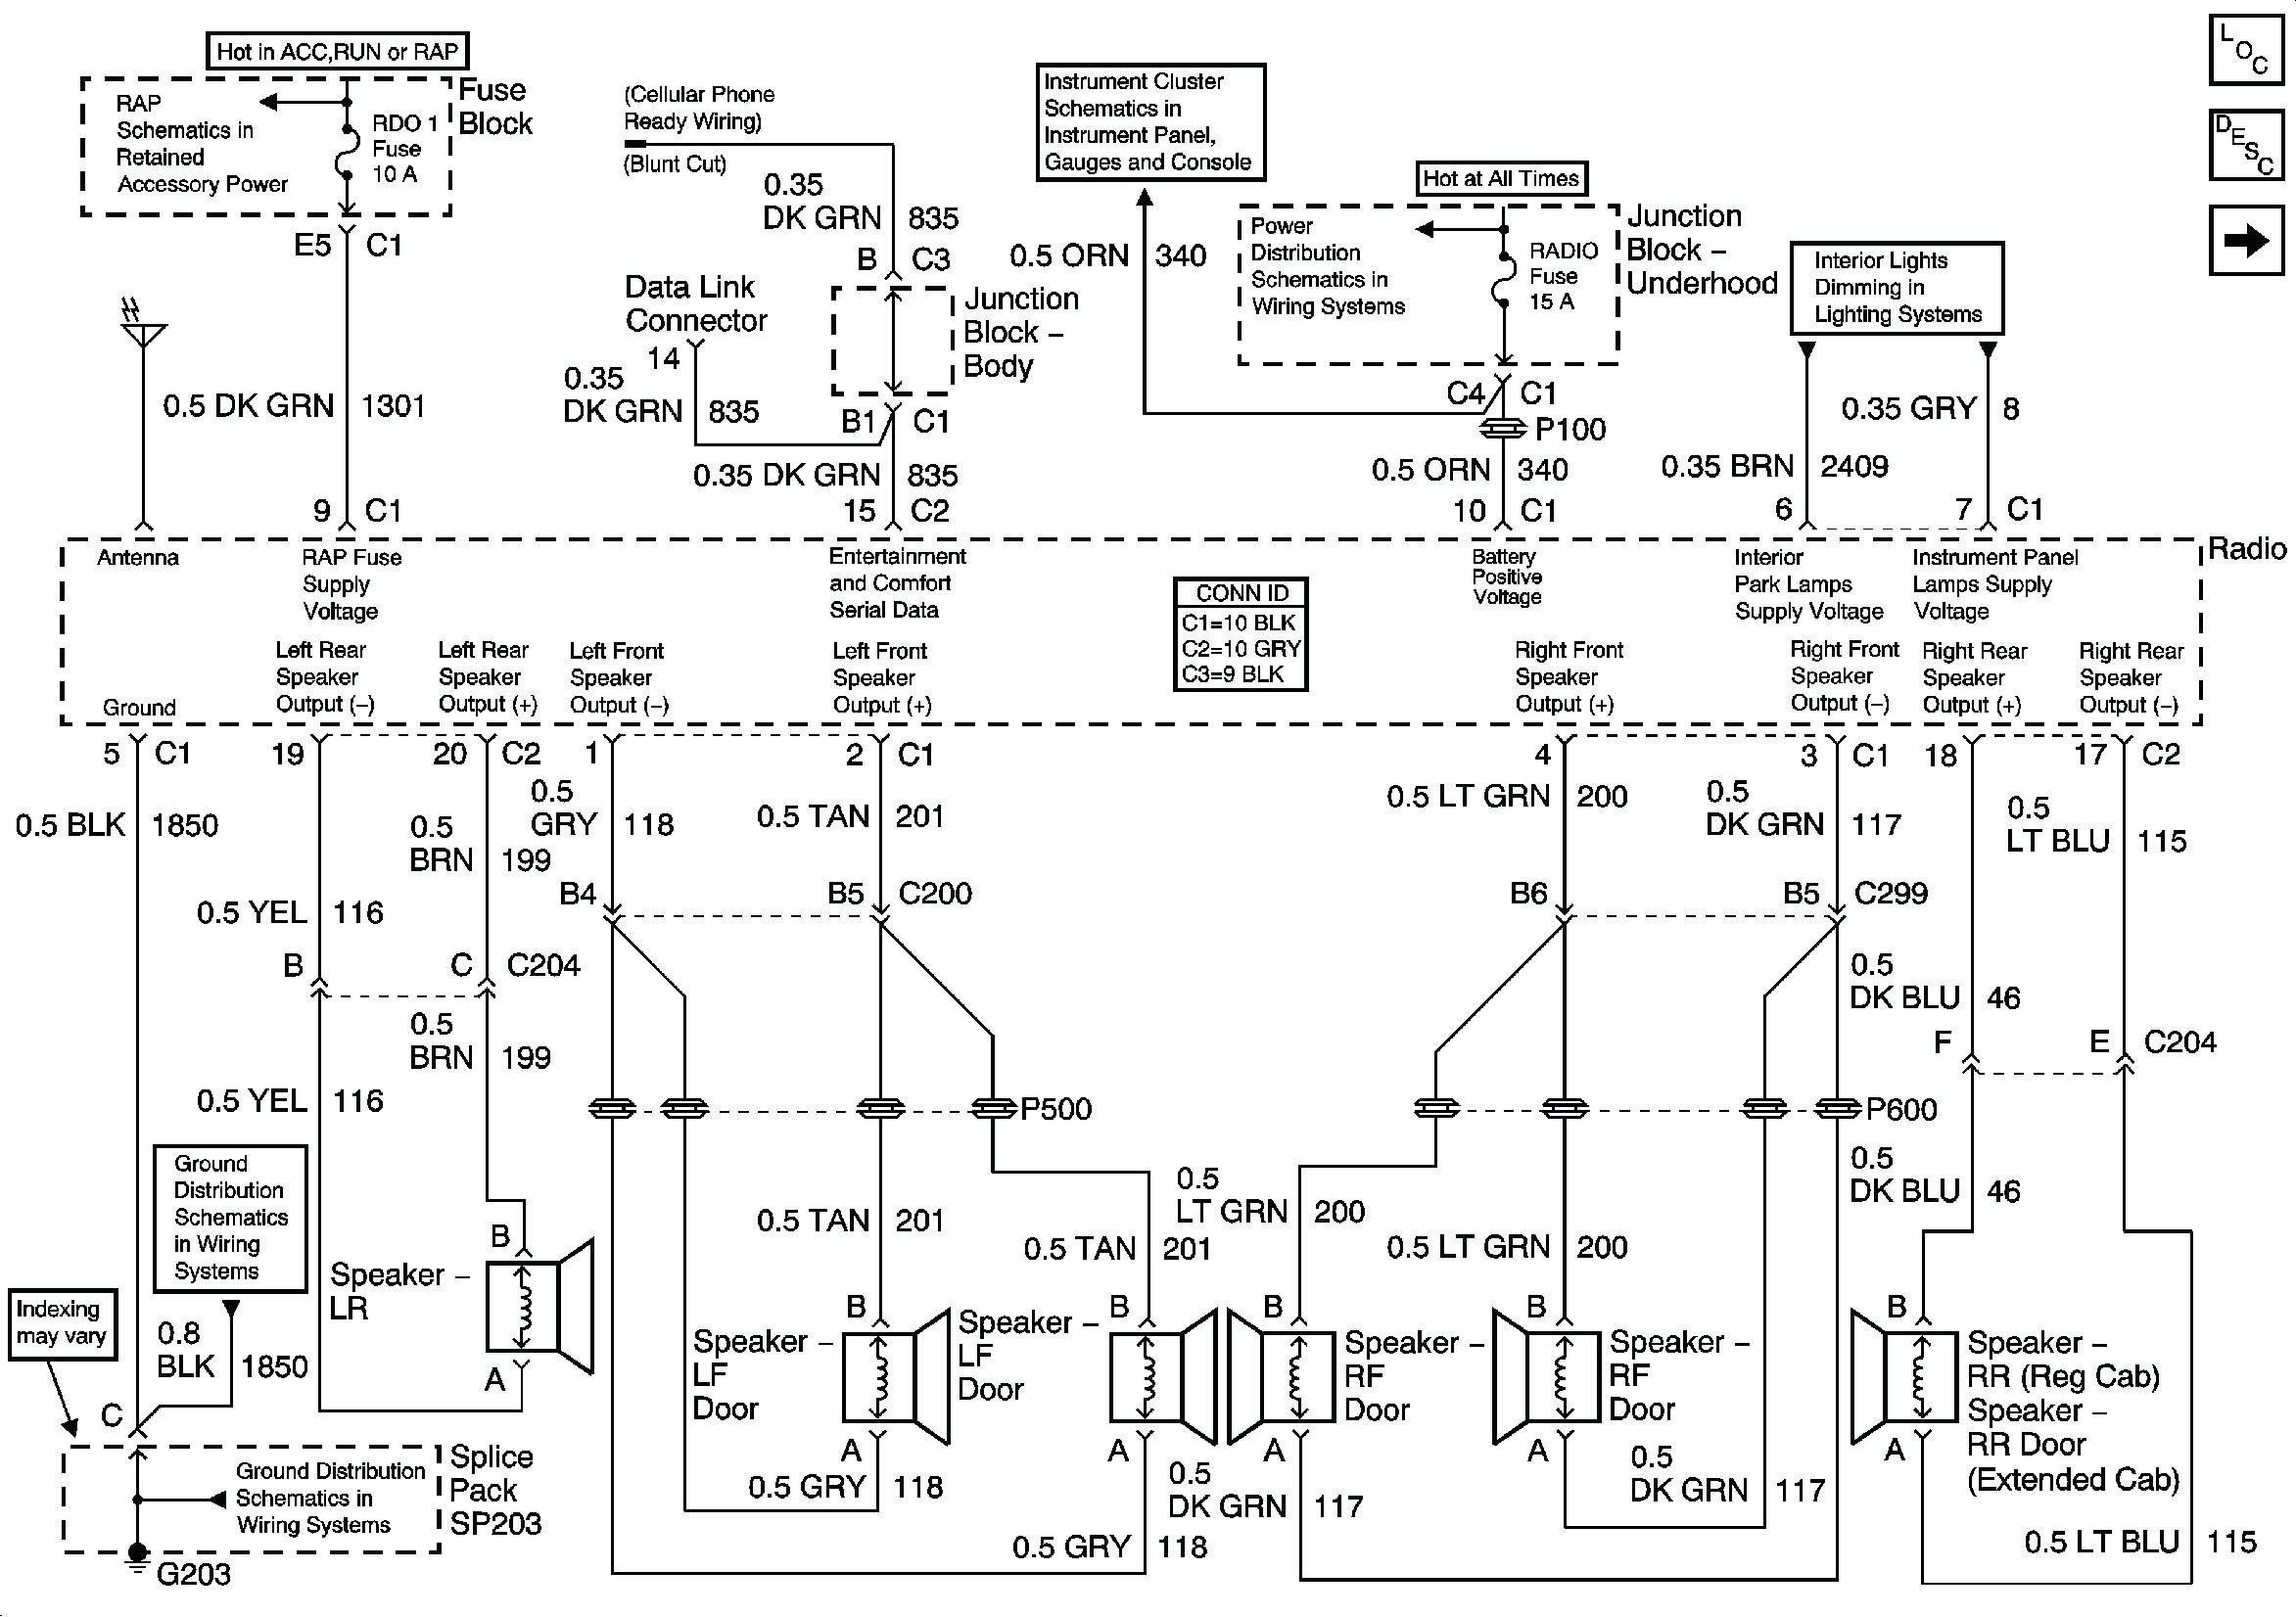 Stereo Wiring Diagram For 2003 Chevy Silverado - Wiring Diagrams - 2003 Chevy Silverado Radio Wiring Diagram